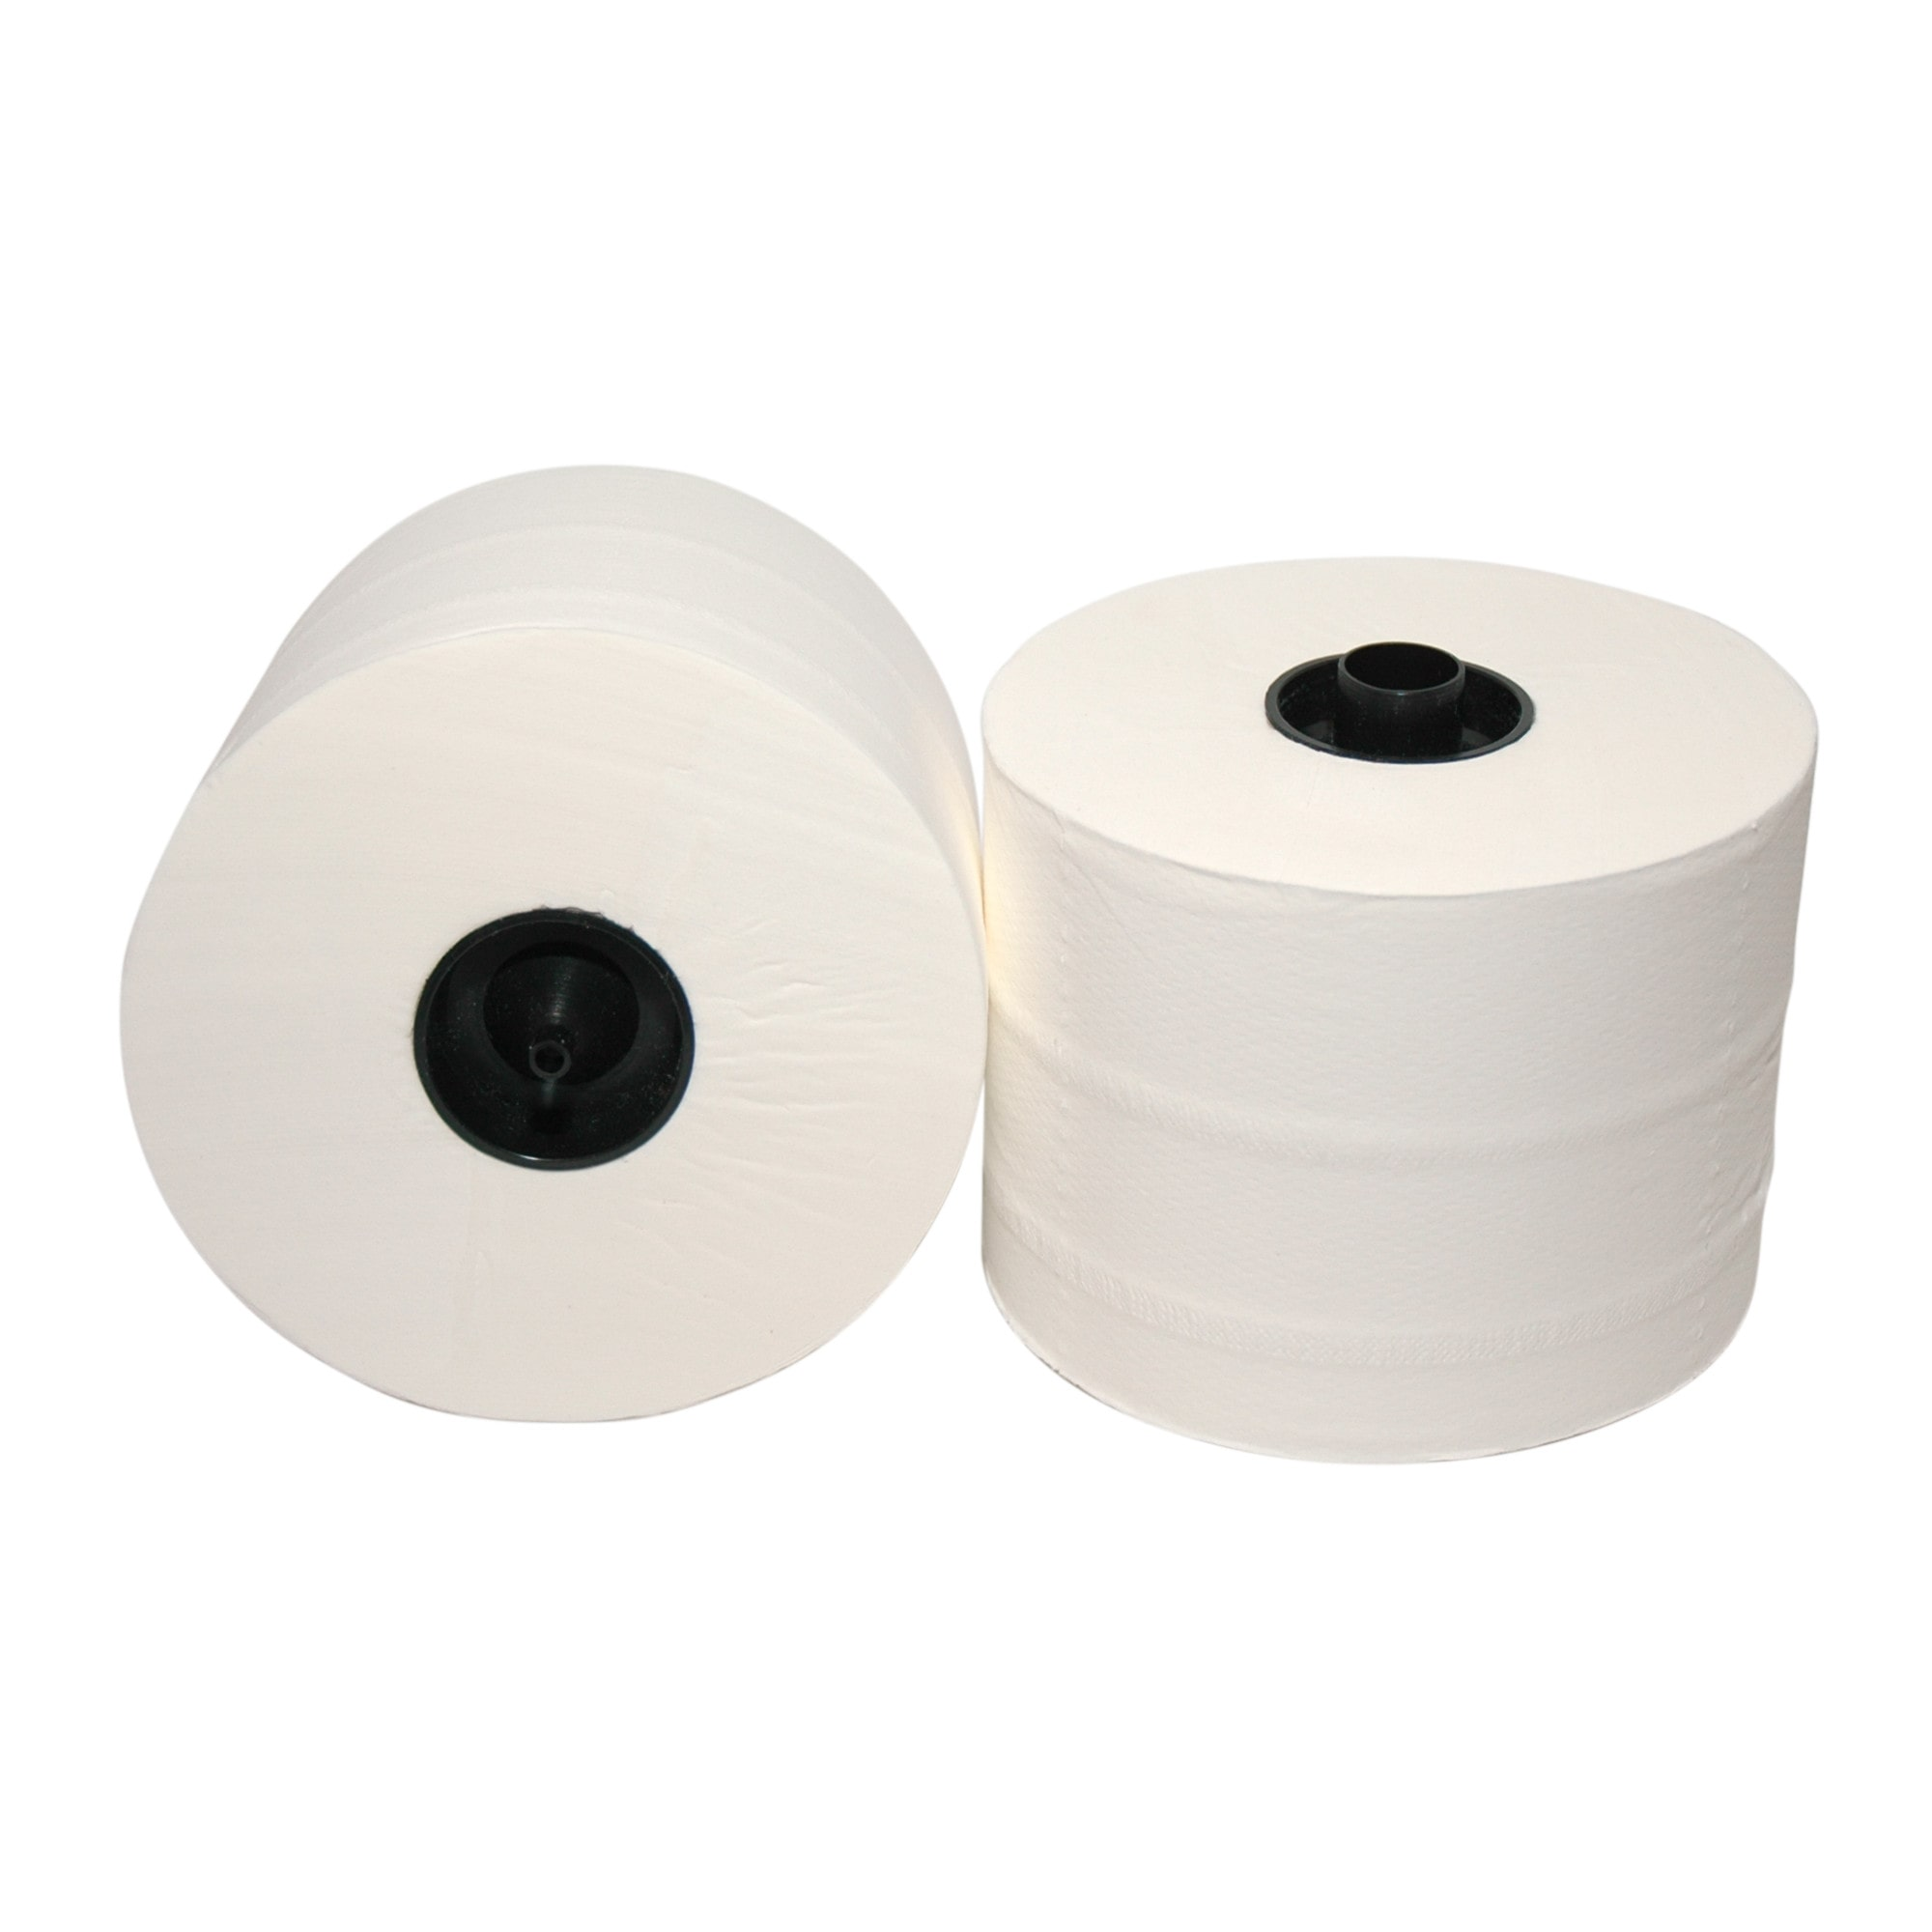 Euro Products   Luxe doprol toiletpapier   3- laags   36 x 65 meter